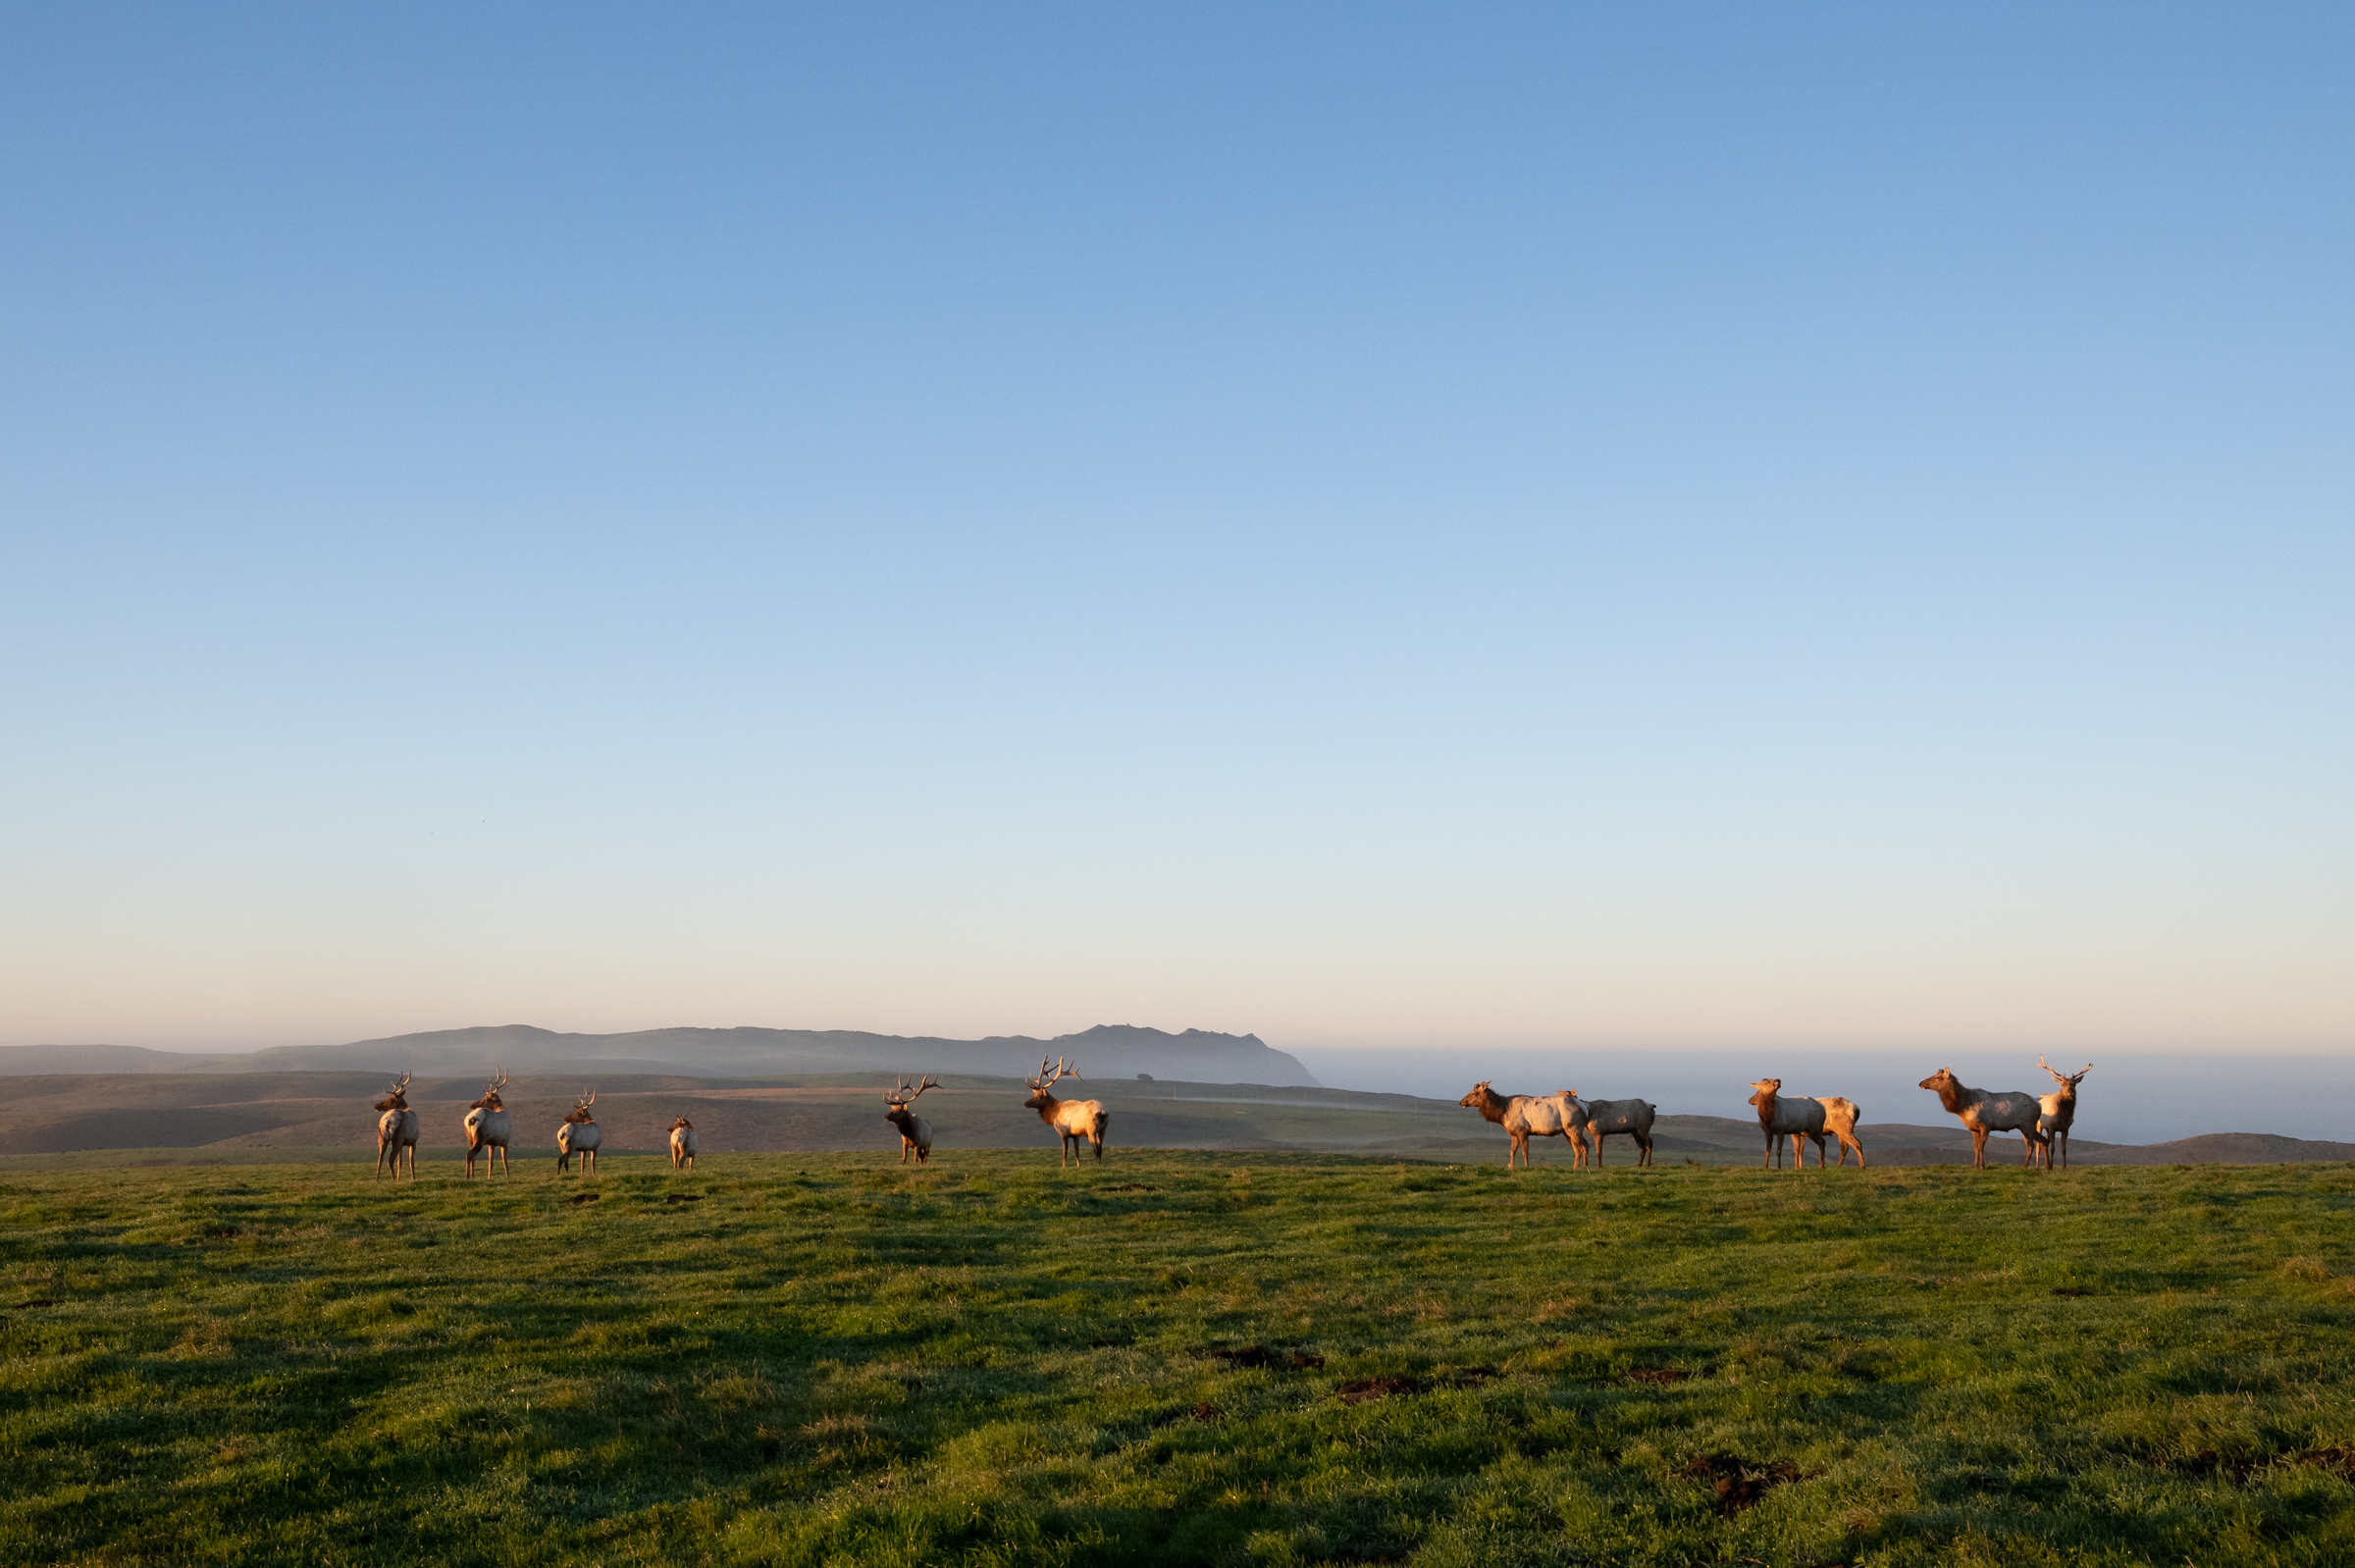 A herd of tule elk grazes on a bluff overlooking the Pacific Ocean at Point Reyes National Seashore.